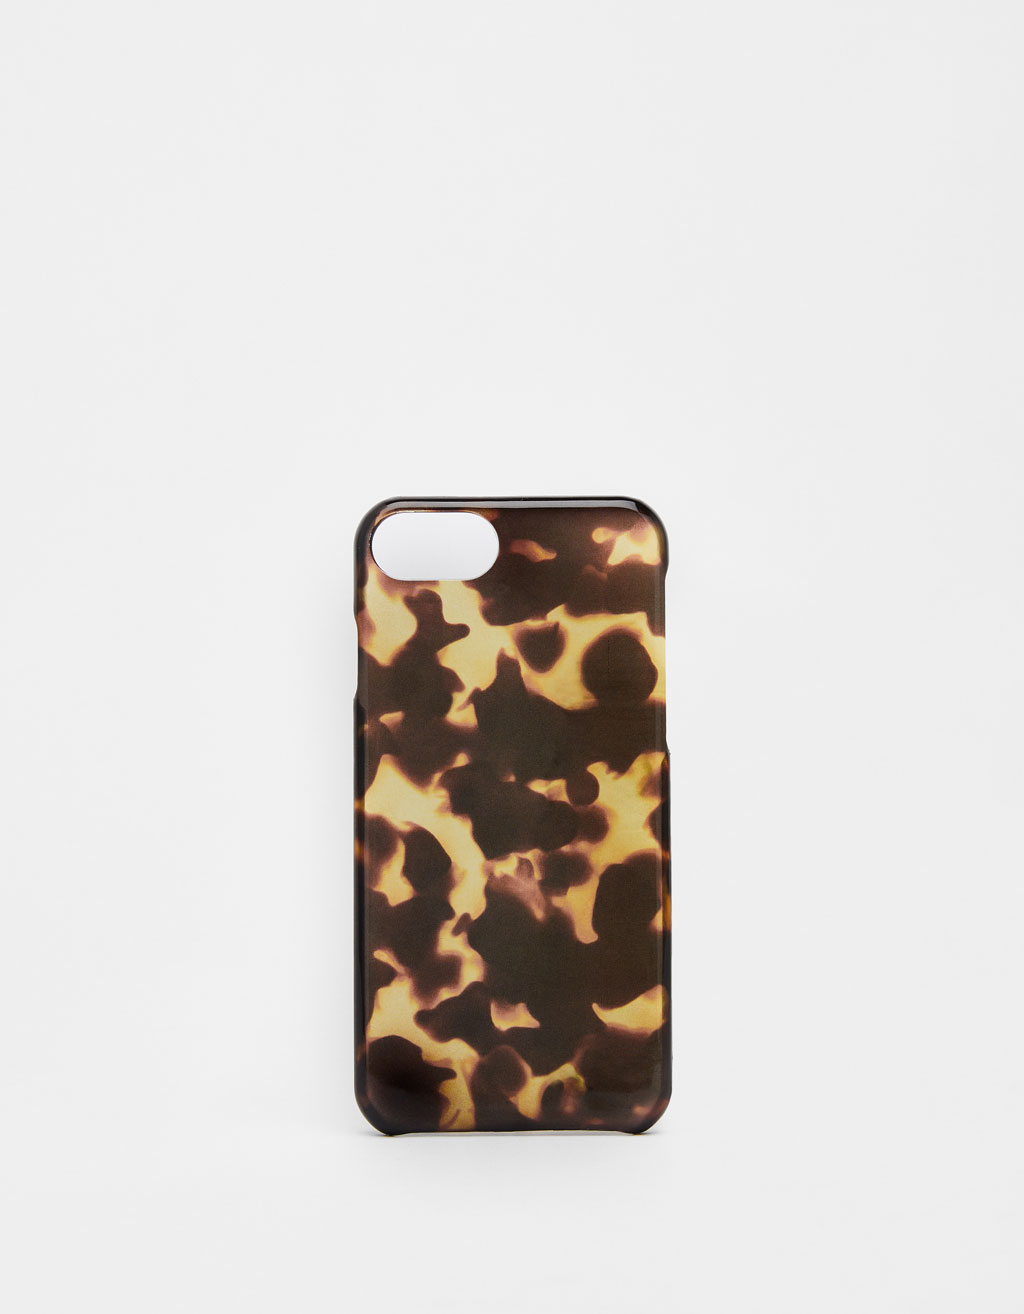 Carcasa efecto carey iPhone 6 / 6S / 7 / 8